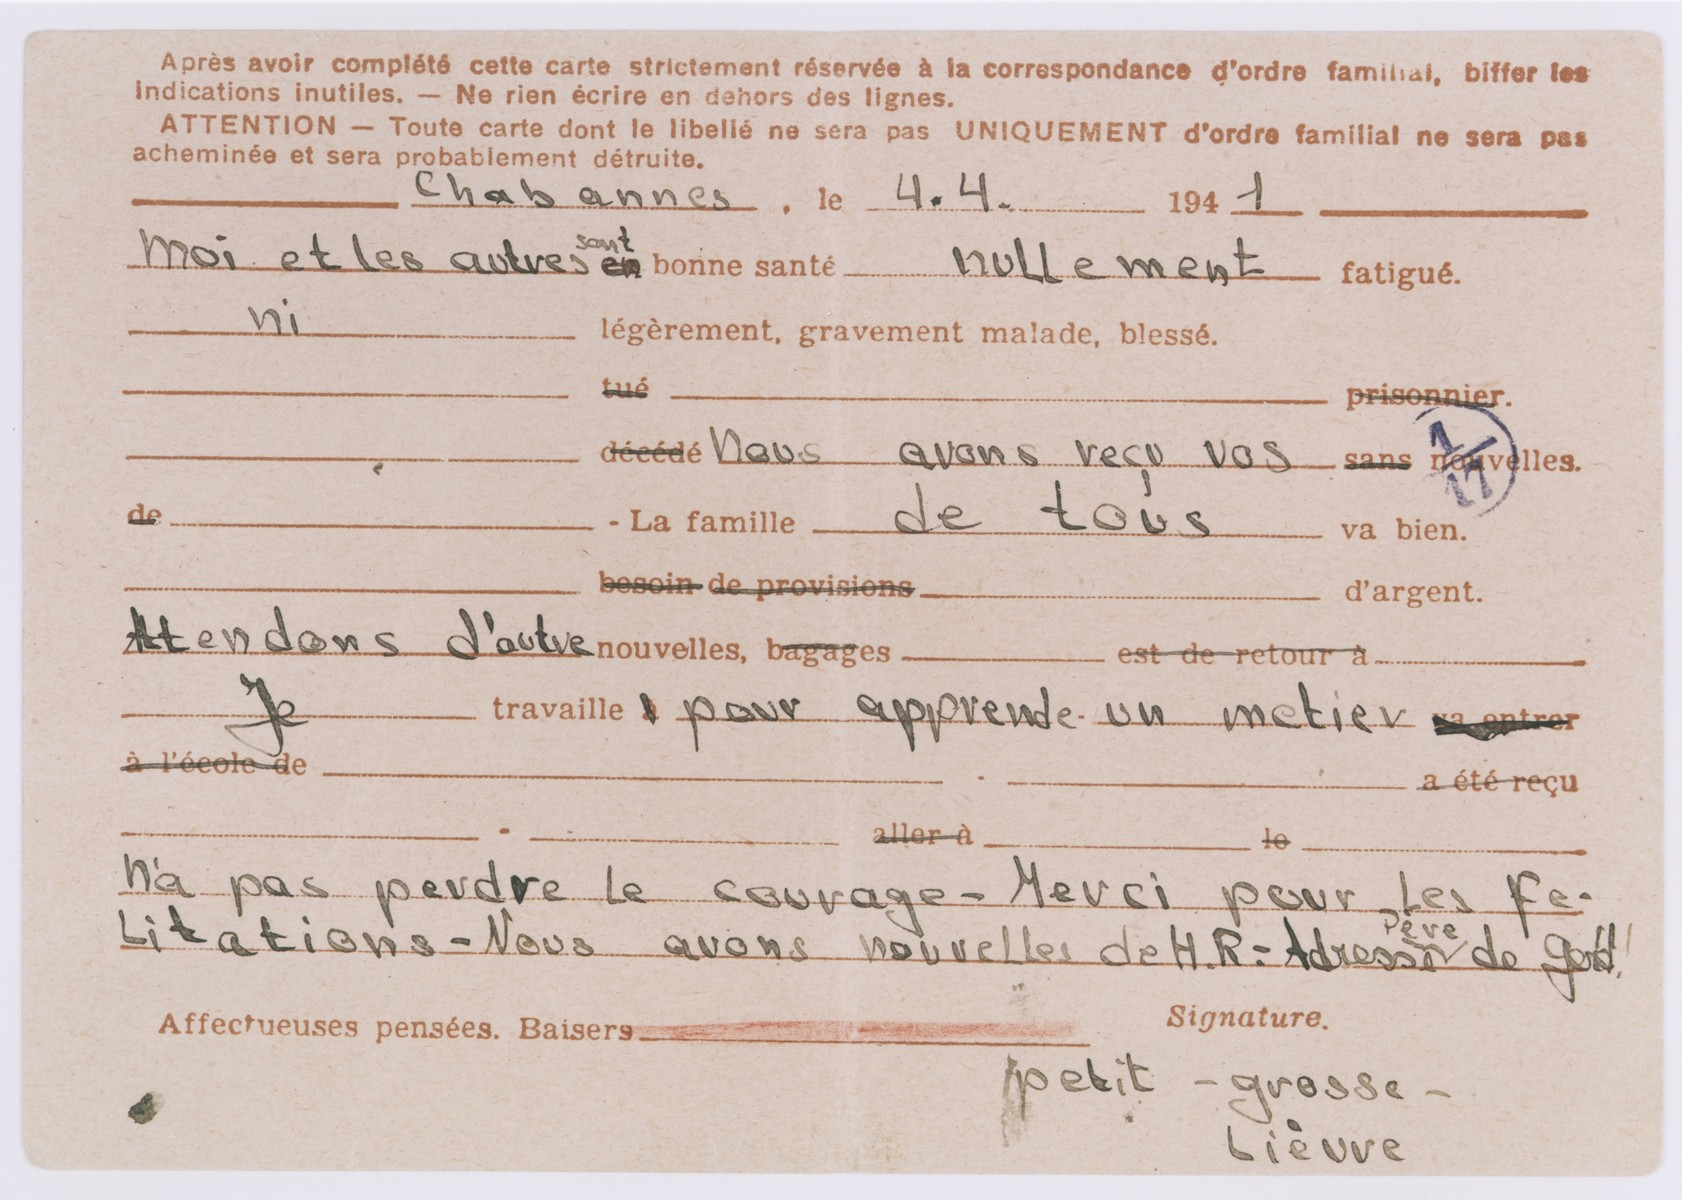 Letter written by B. Warschauer at the Chabannes children's home to Norbert Bikales in Paris on a pre-printed postcard that includes censorship regulations.   The correspondent is instructed to fill in the appropriate lines only and not to add additional information.